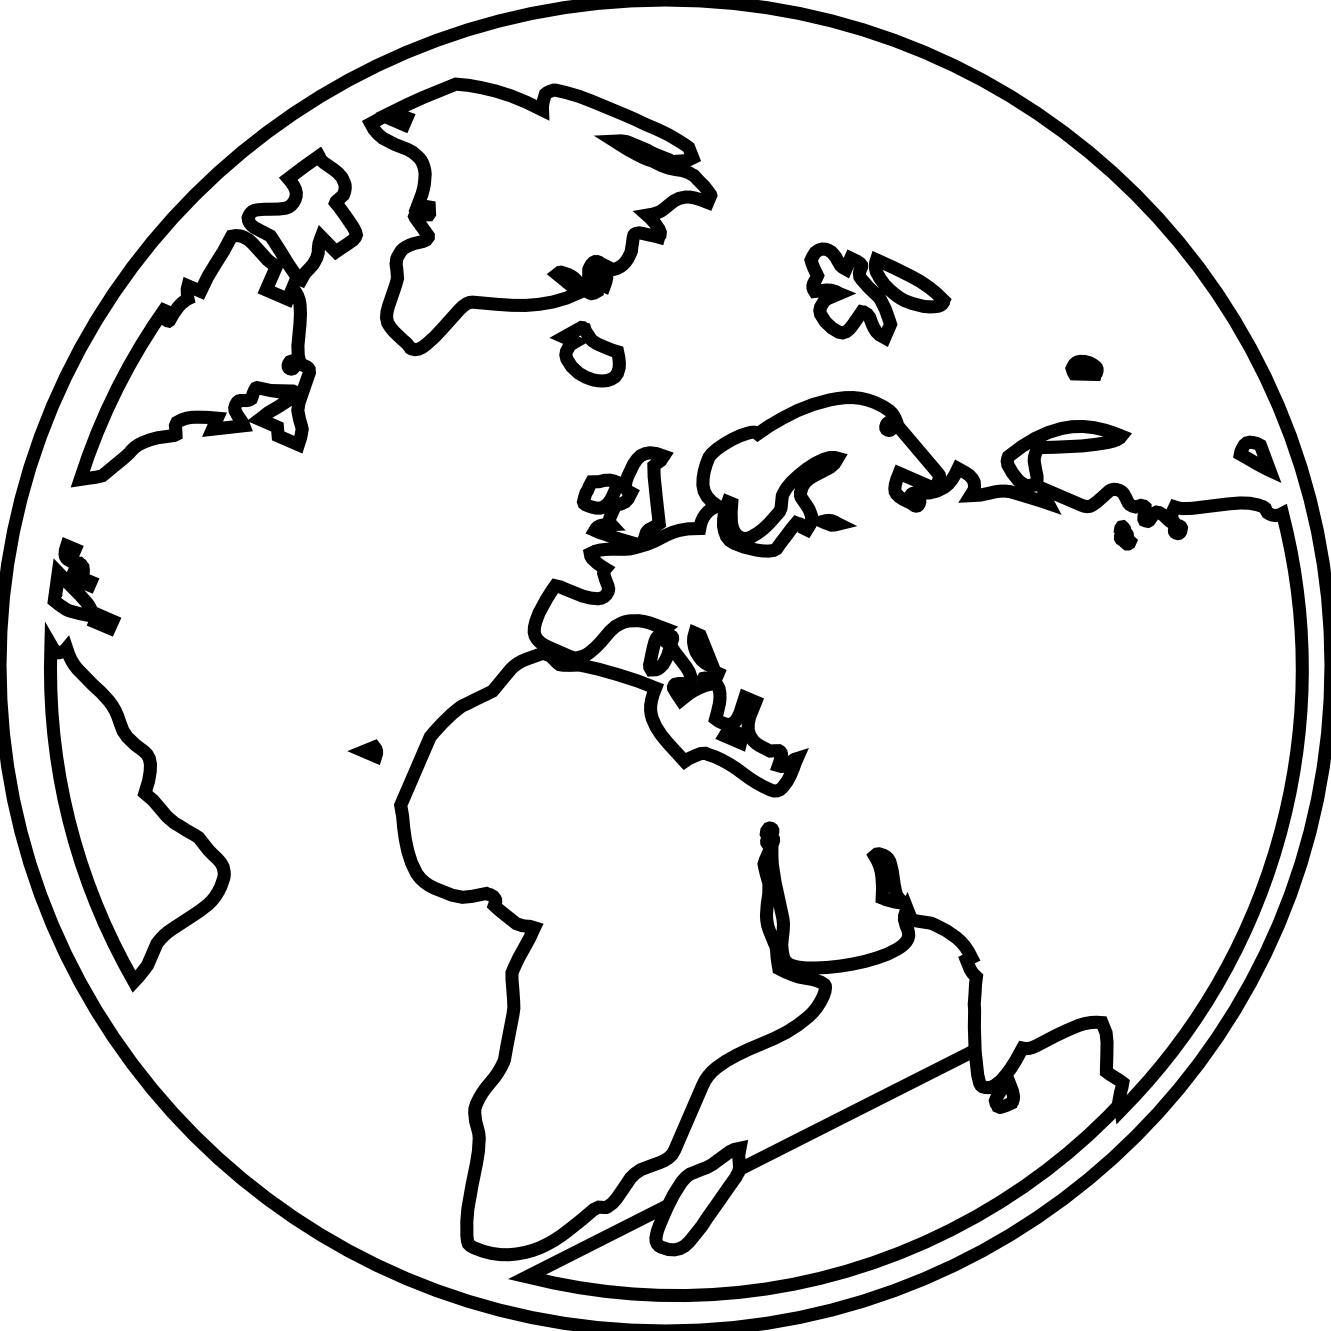 Line Drawing Earth : Rg earth globe black white line art tattoo